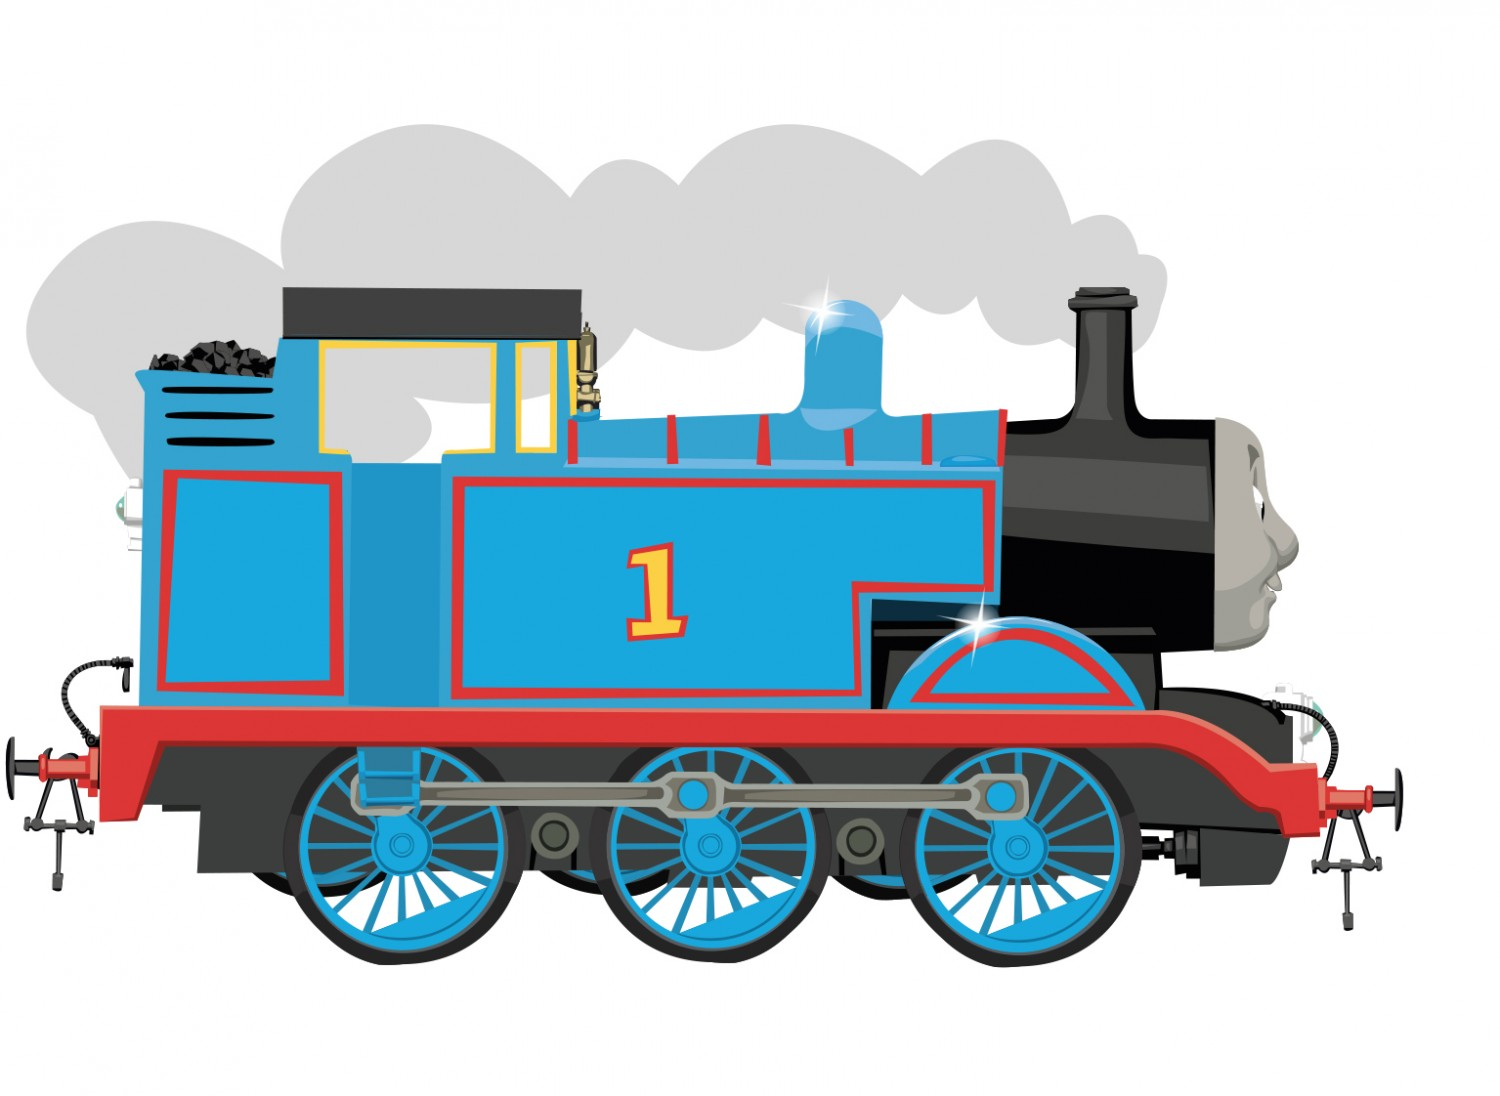 Engine clipart side view, Engine side view Transparent FREE.